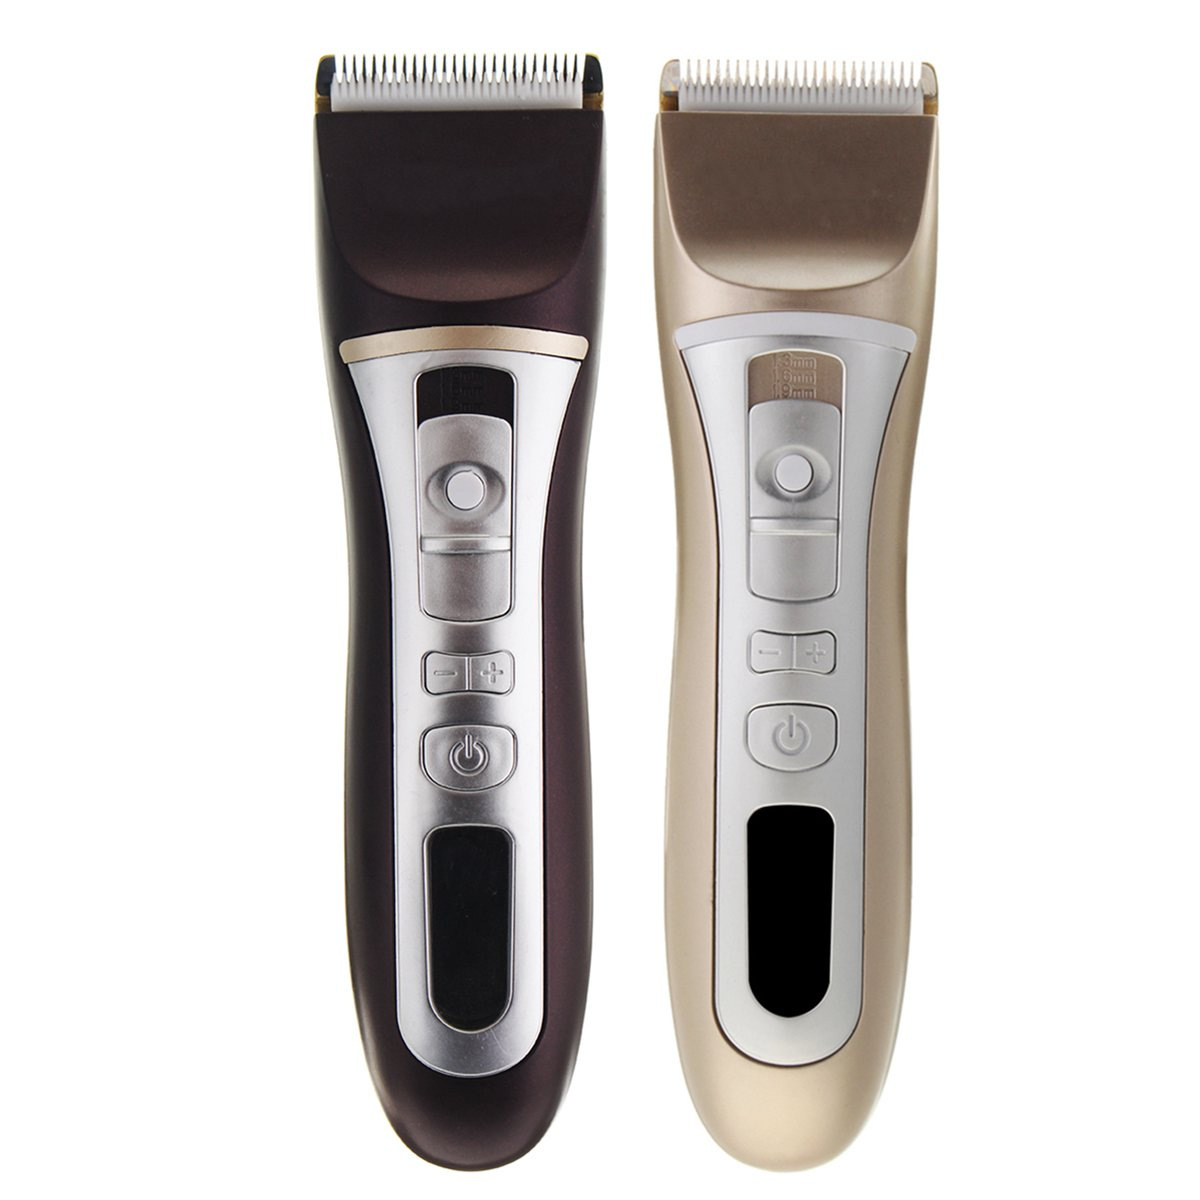 100V-240V Electric Hair Clipper With Comb